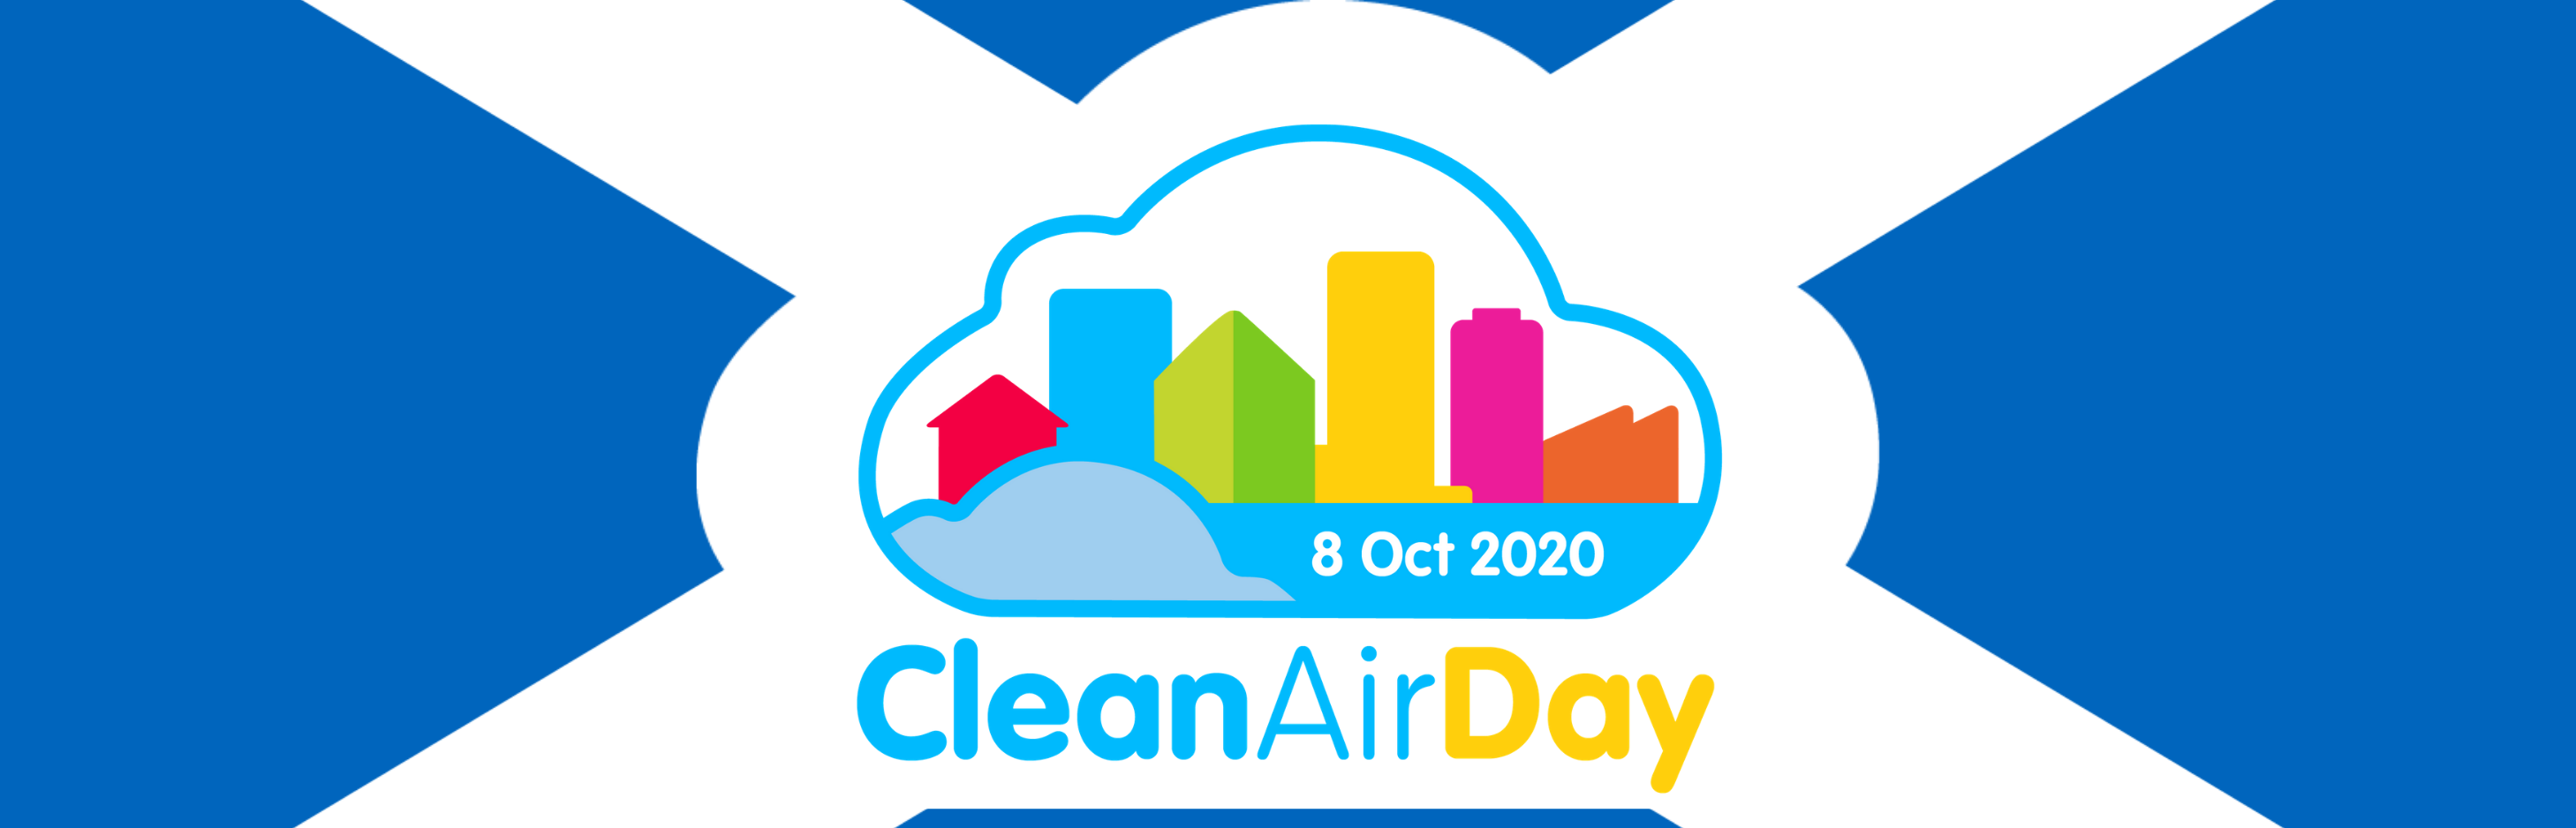 Clean Air Day 2020 logo on the background of a scottish flag